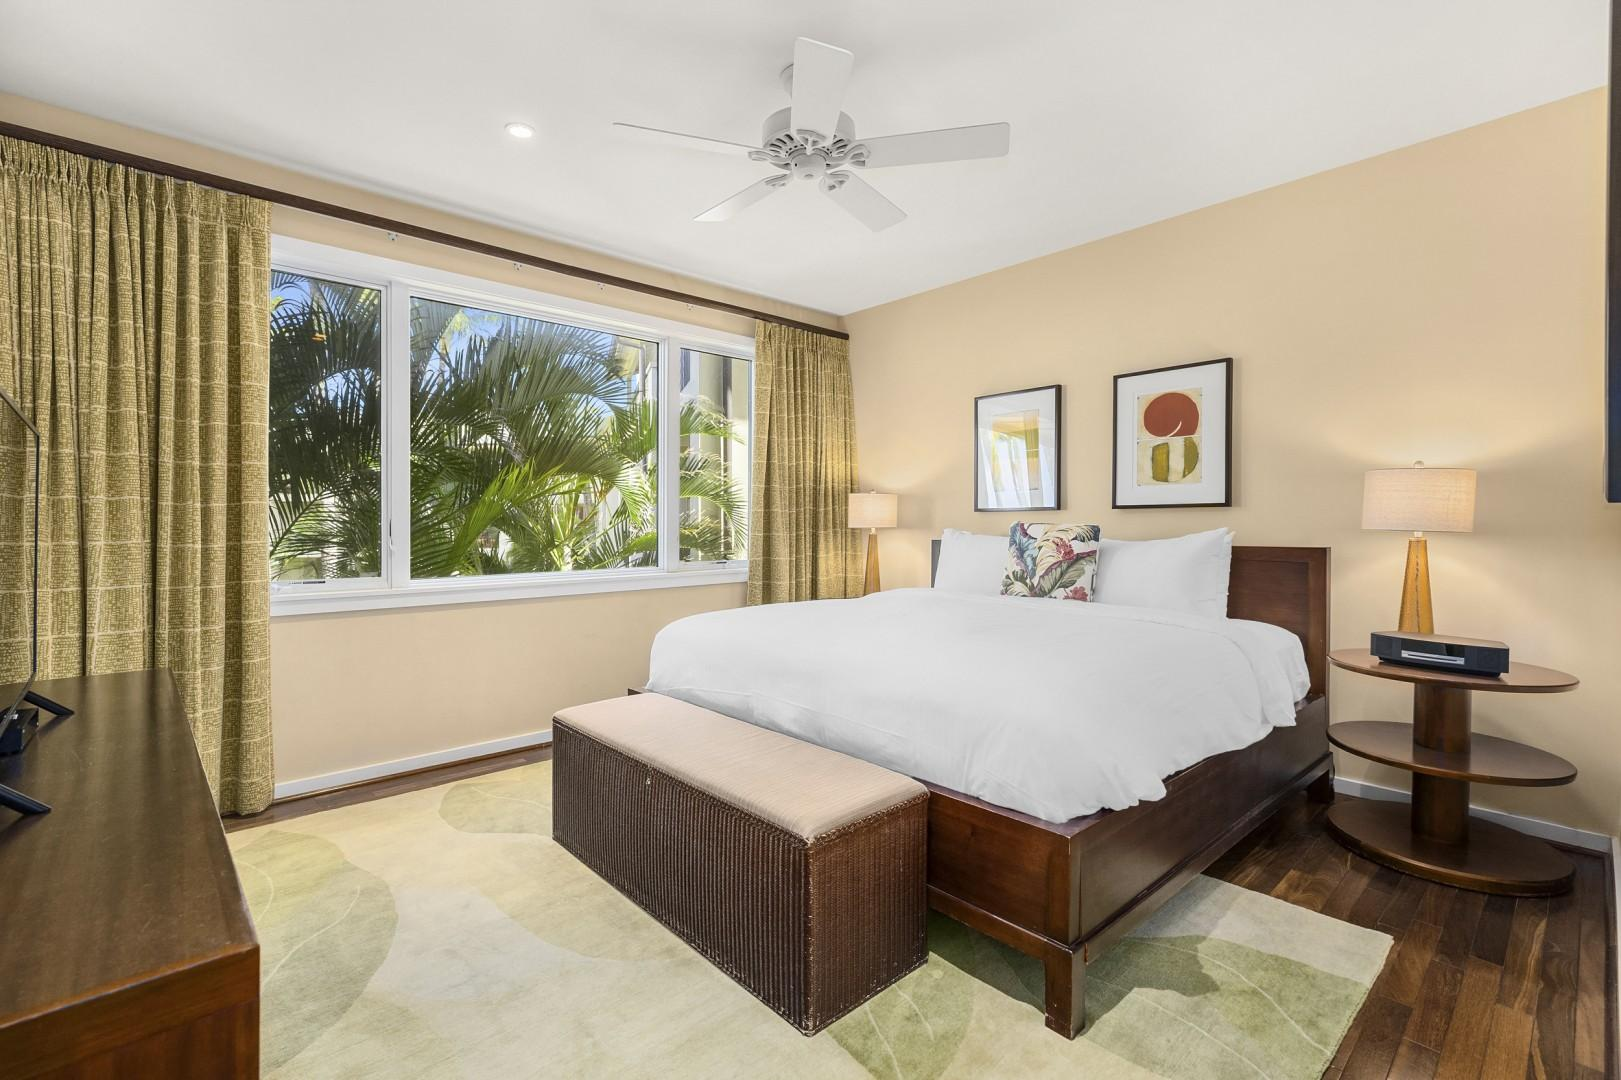 Master Bedroom with a gorgeous view